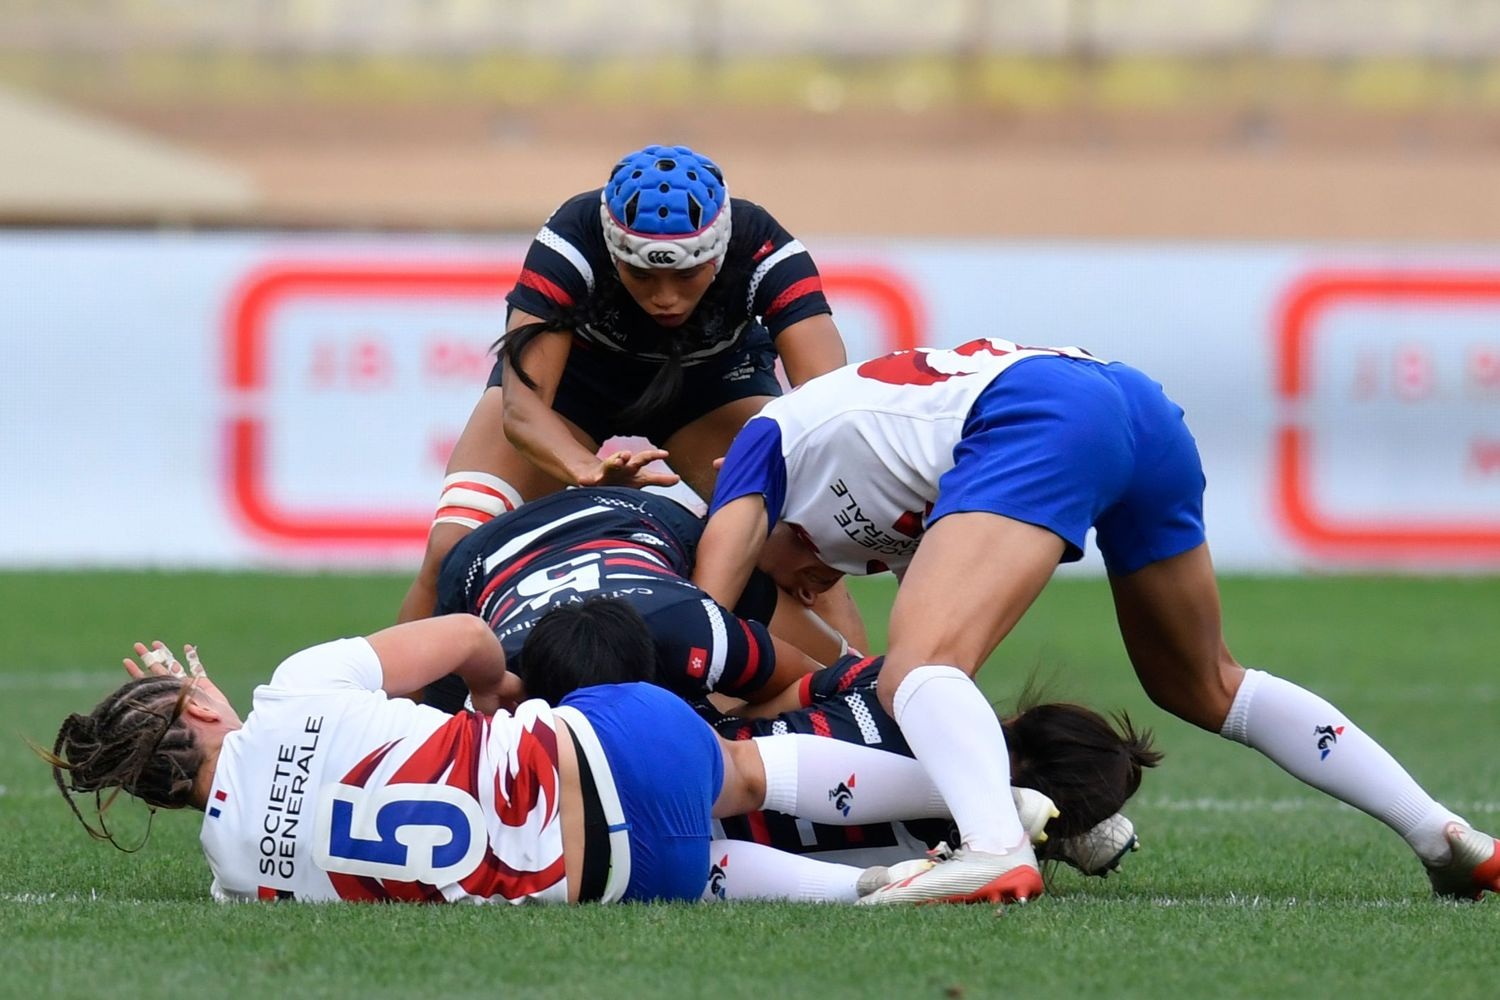 World Rugby Sevens Repechage - Day Three